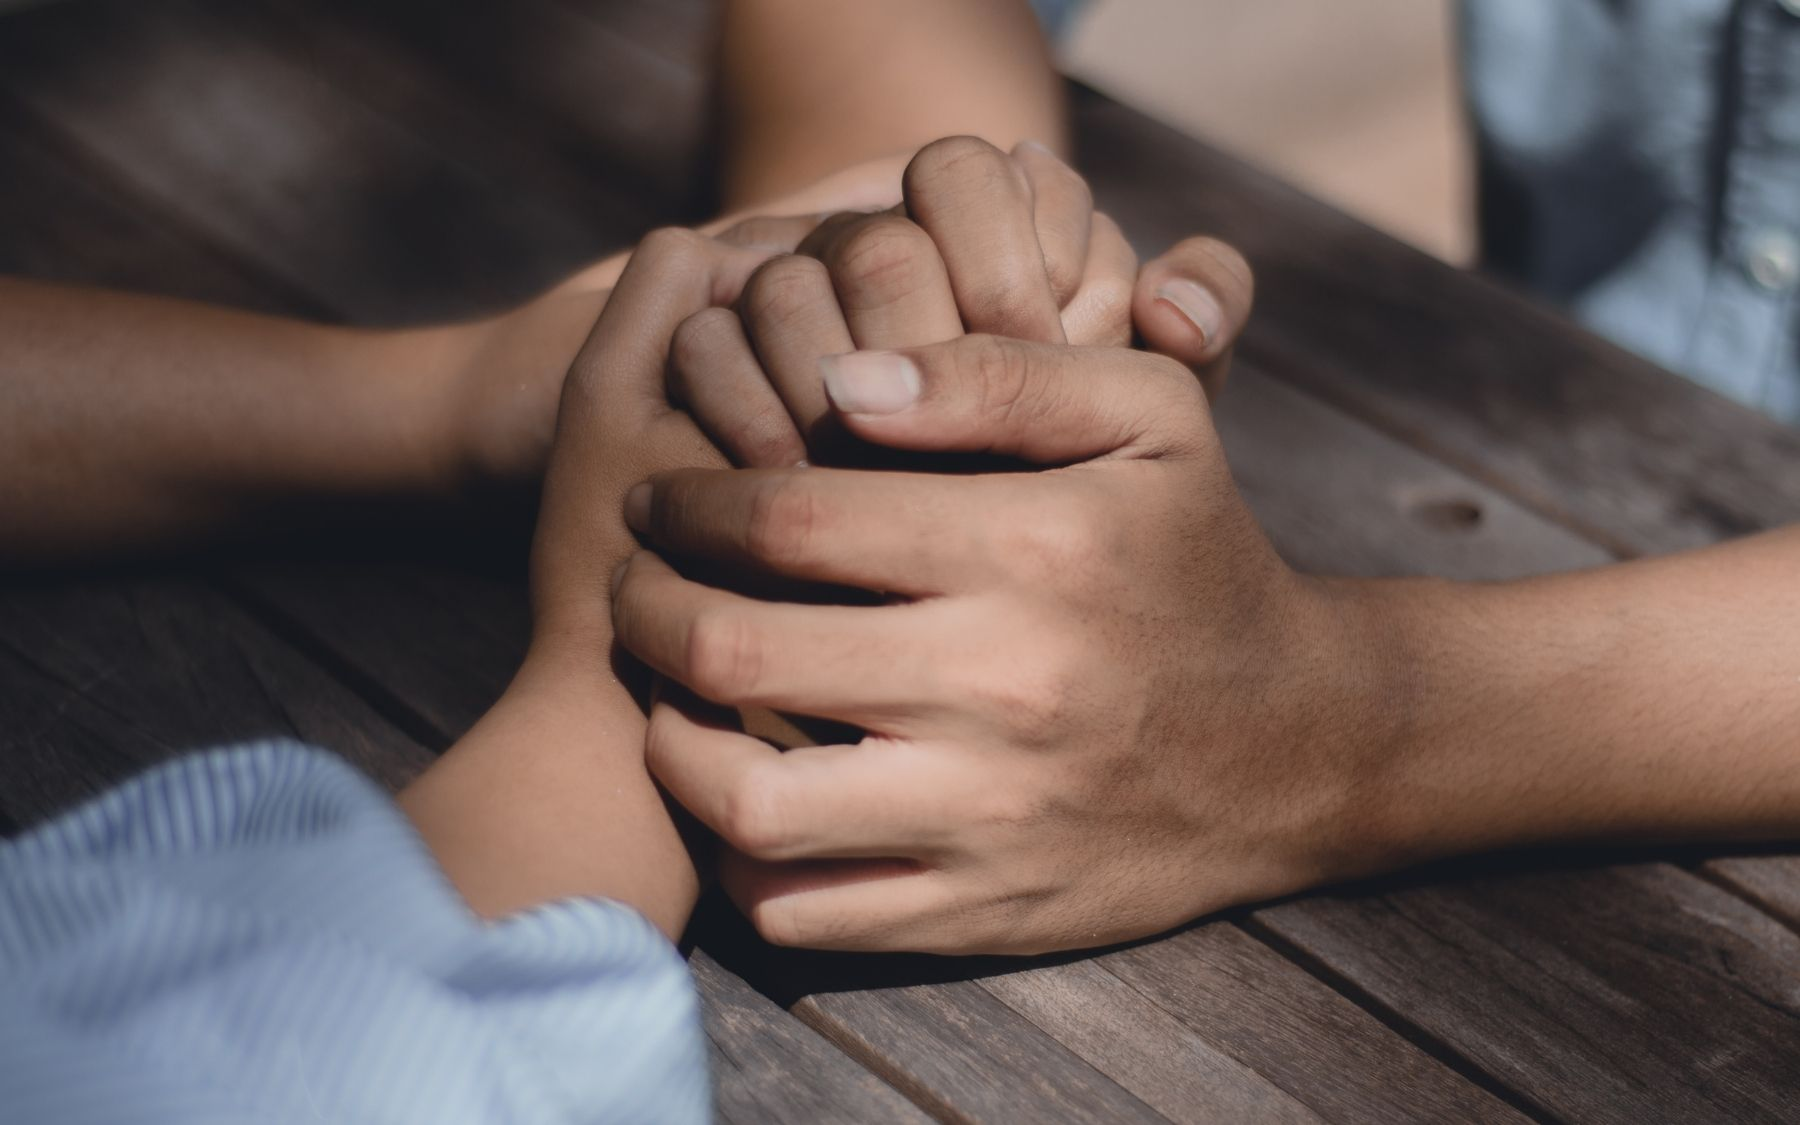 When a loved one is diagnosed with prostate cancer it can be life changing. Here are some tips on caregiving for someone with prostate cancer.